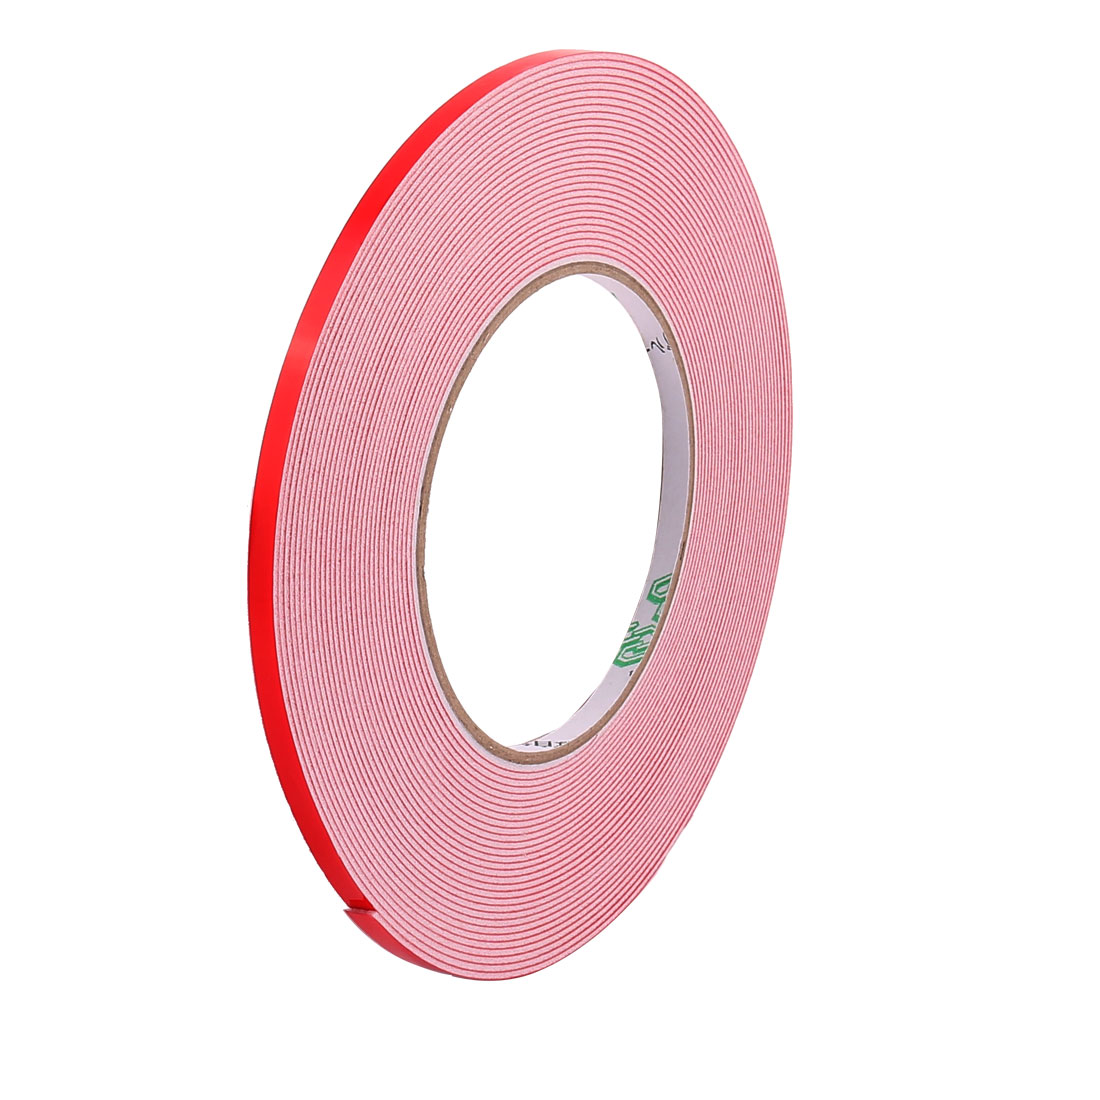 5mmx1mm Double Sided Sponge Tape Adhesive Sticker Foam Glue Strip Sealing 10 Meters 33Ft